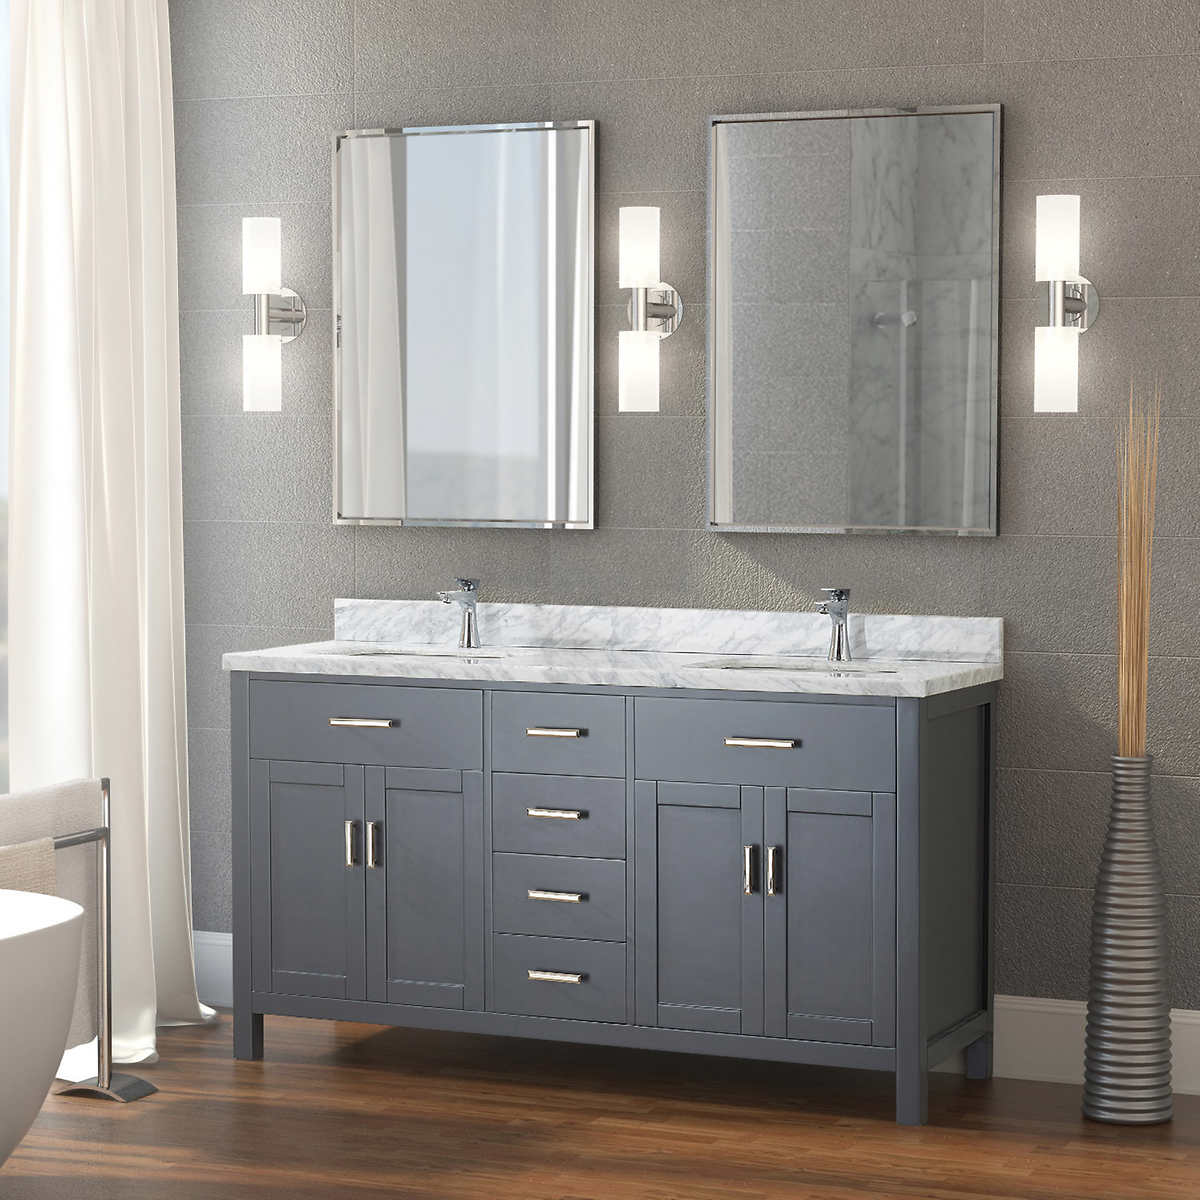 100 Double Vanity Bathroom Cherry Bathroom Cabinets Master Bathroom Vanities 60 Inches Double